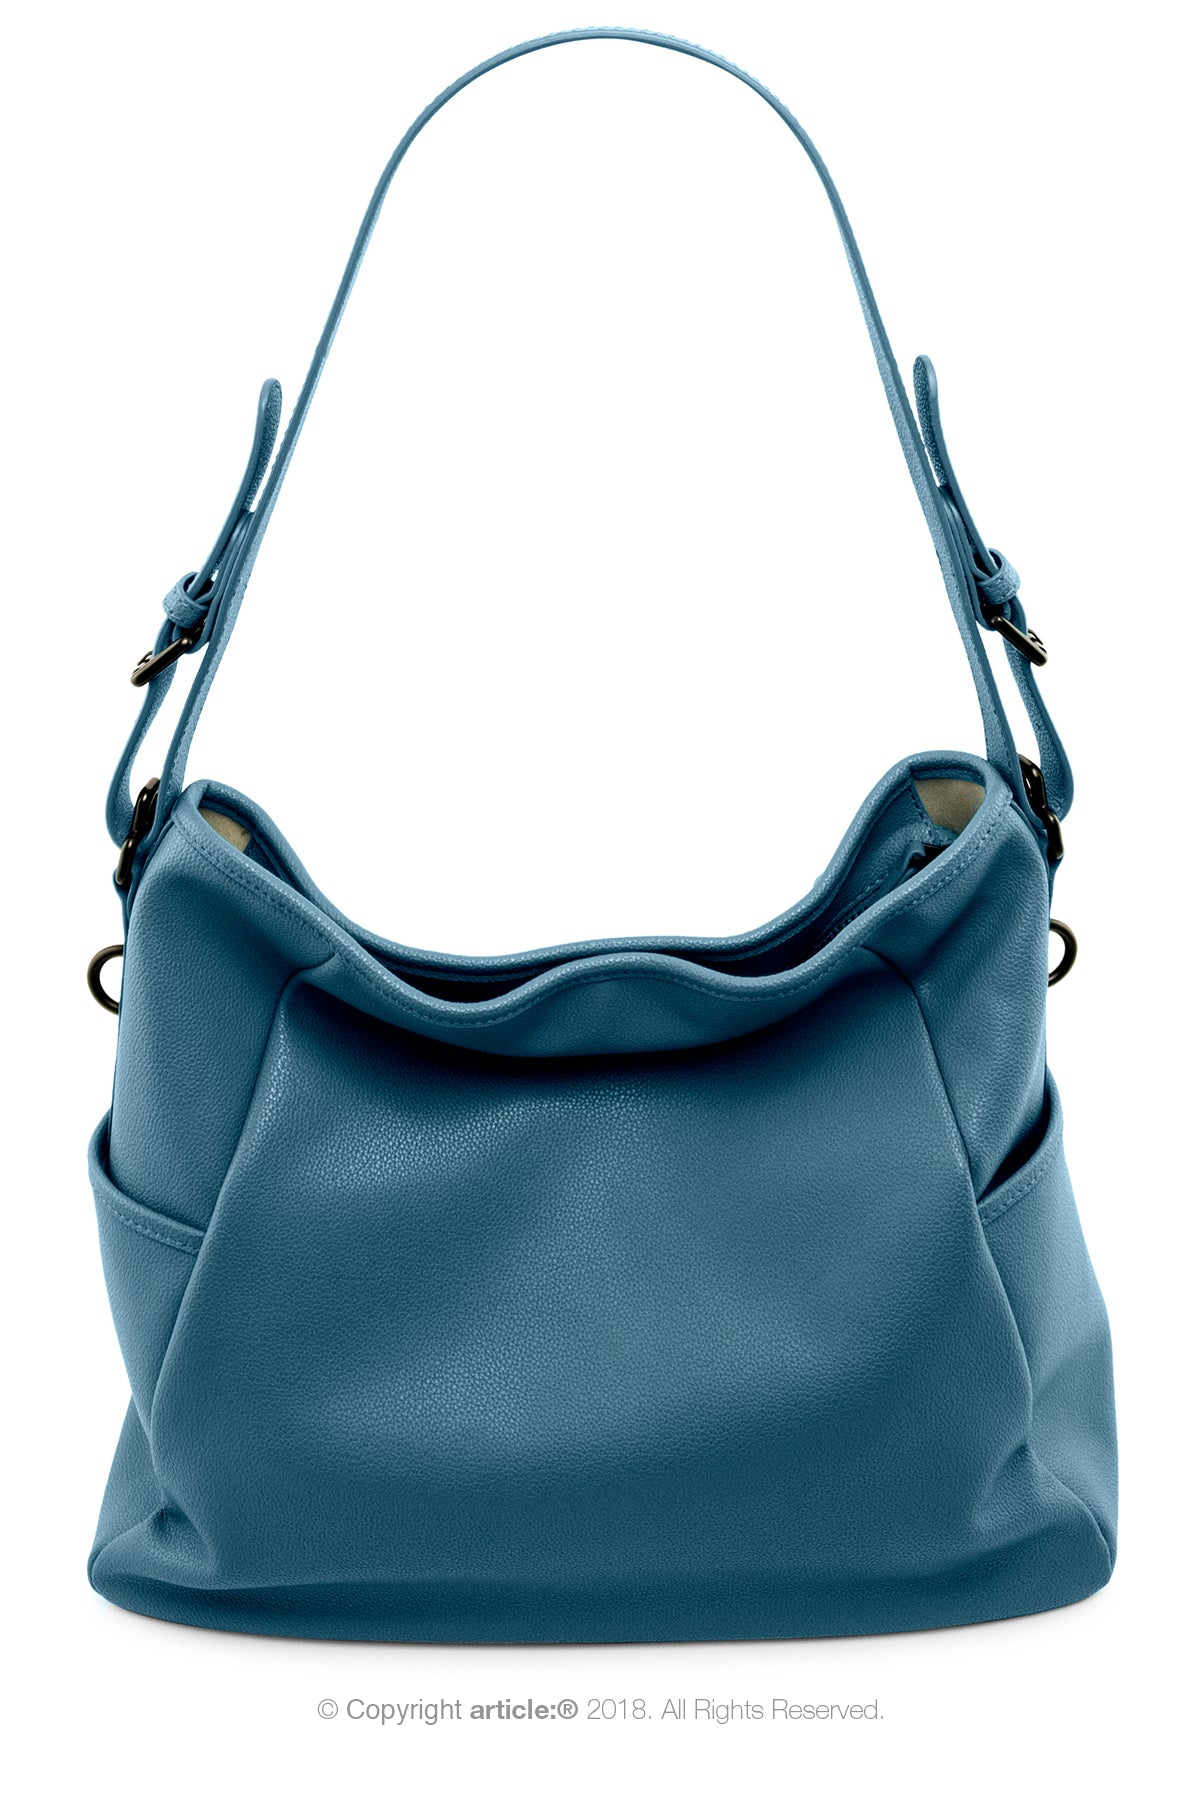 article: #130 Handbag Hobo - Prussian